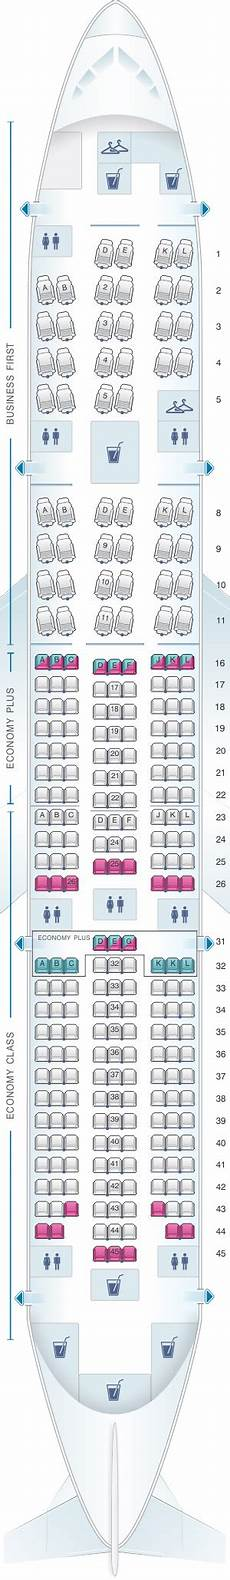 United Airlines Seating Chart 777 International Seat Map United Airlines Boeing B777 200 777 Version 2